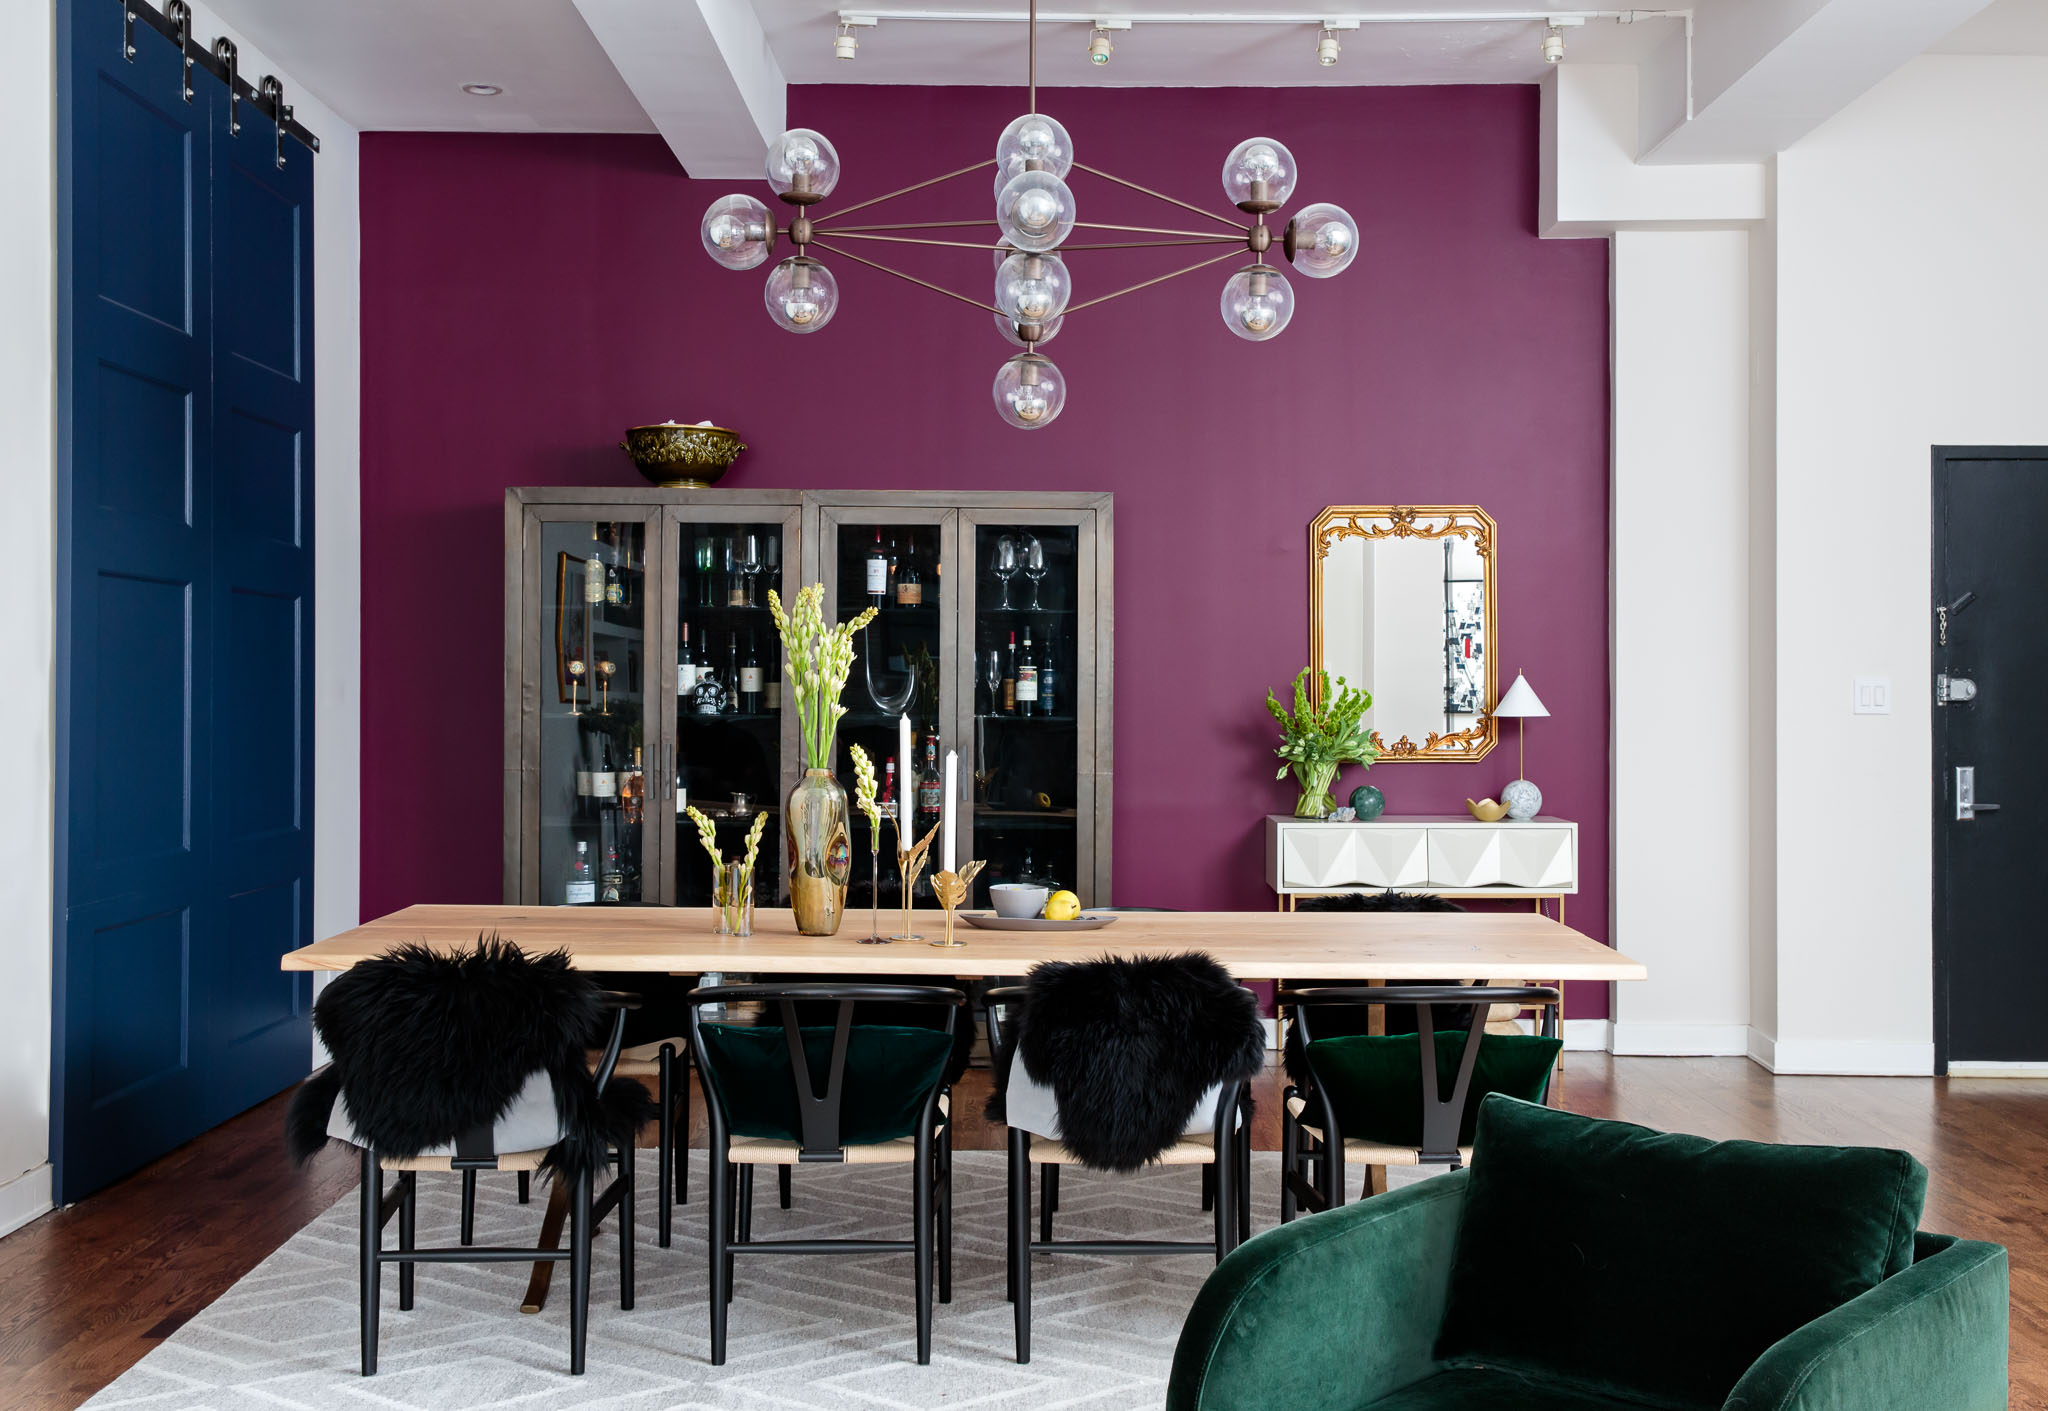 The latest interior trends